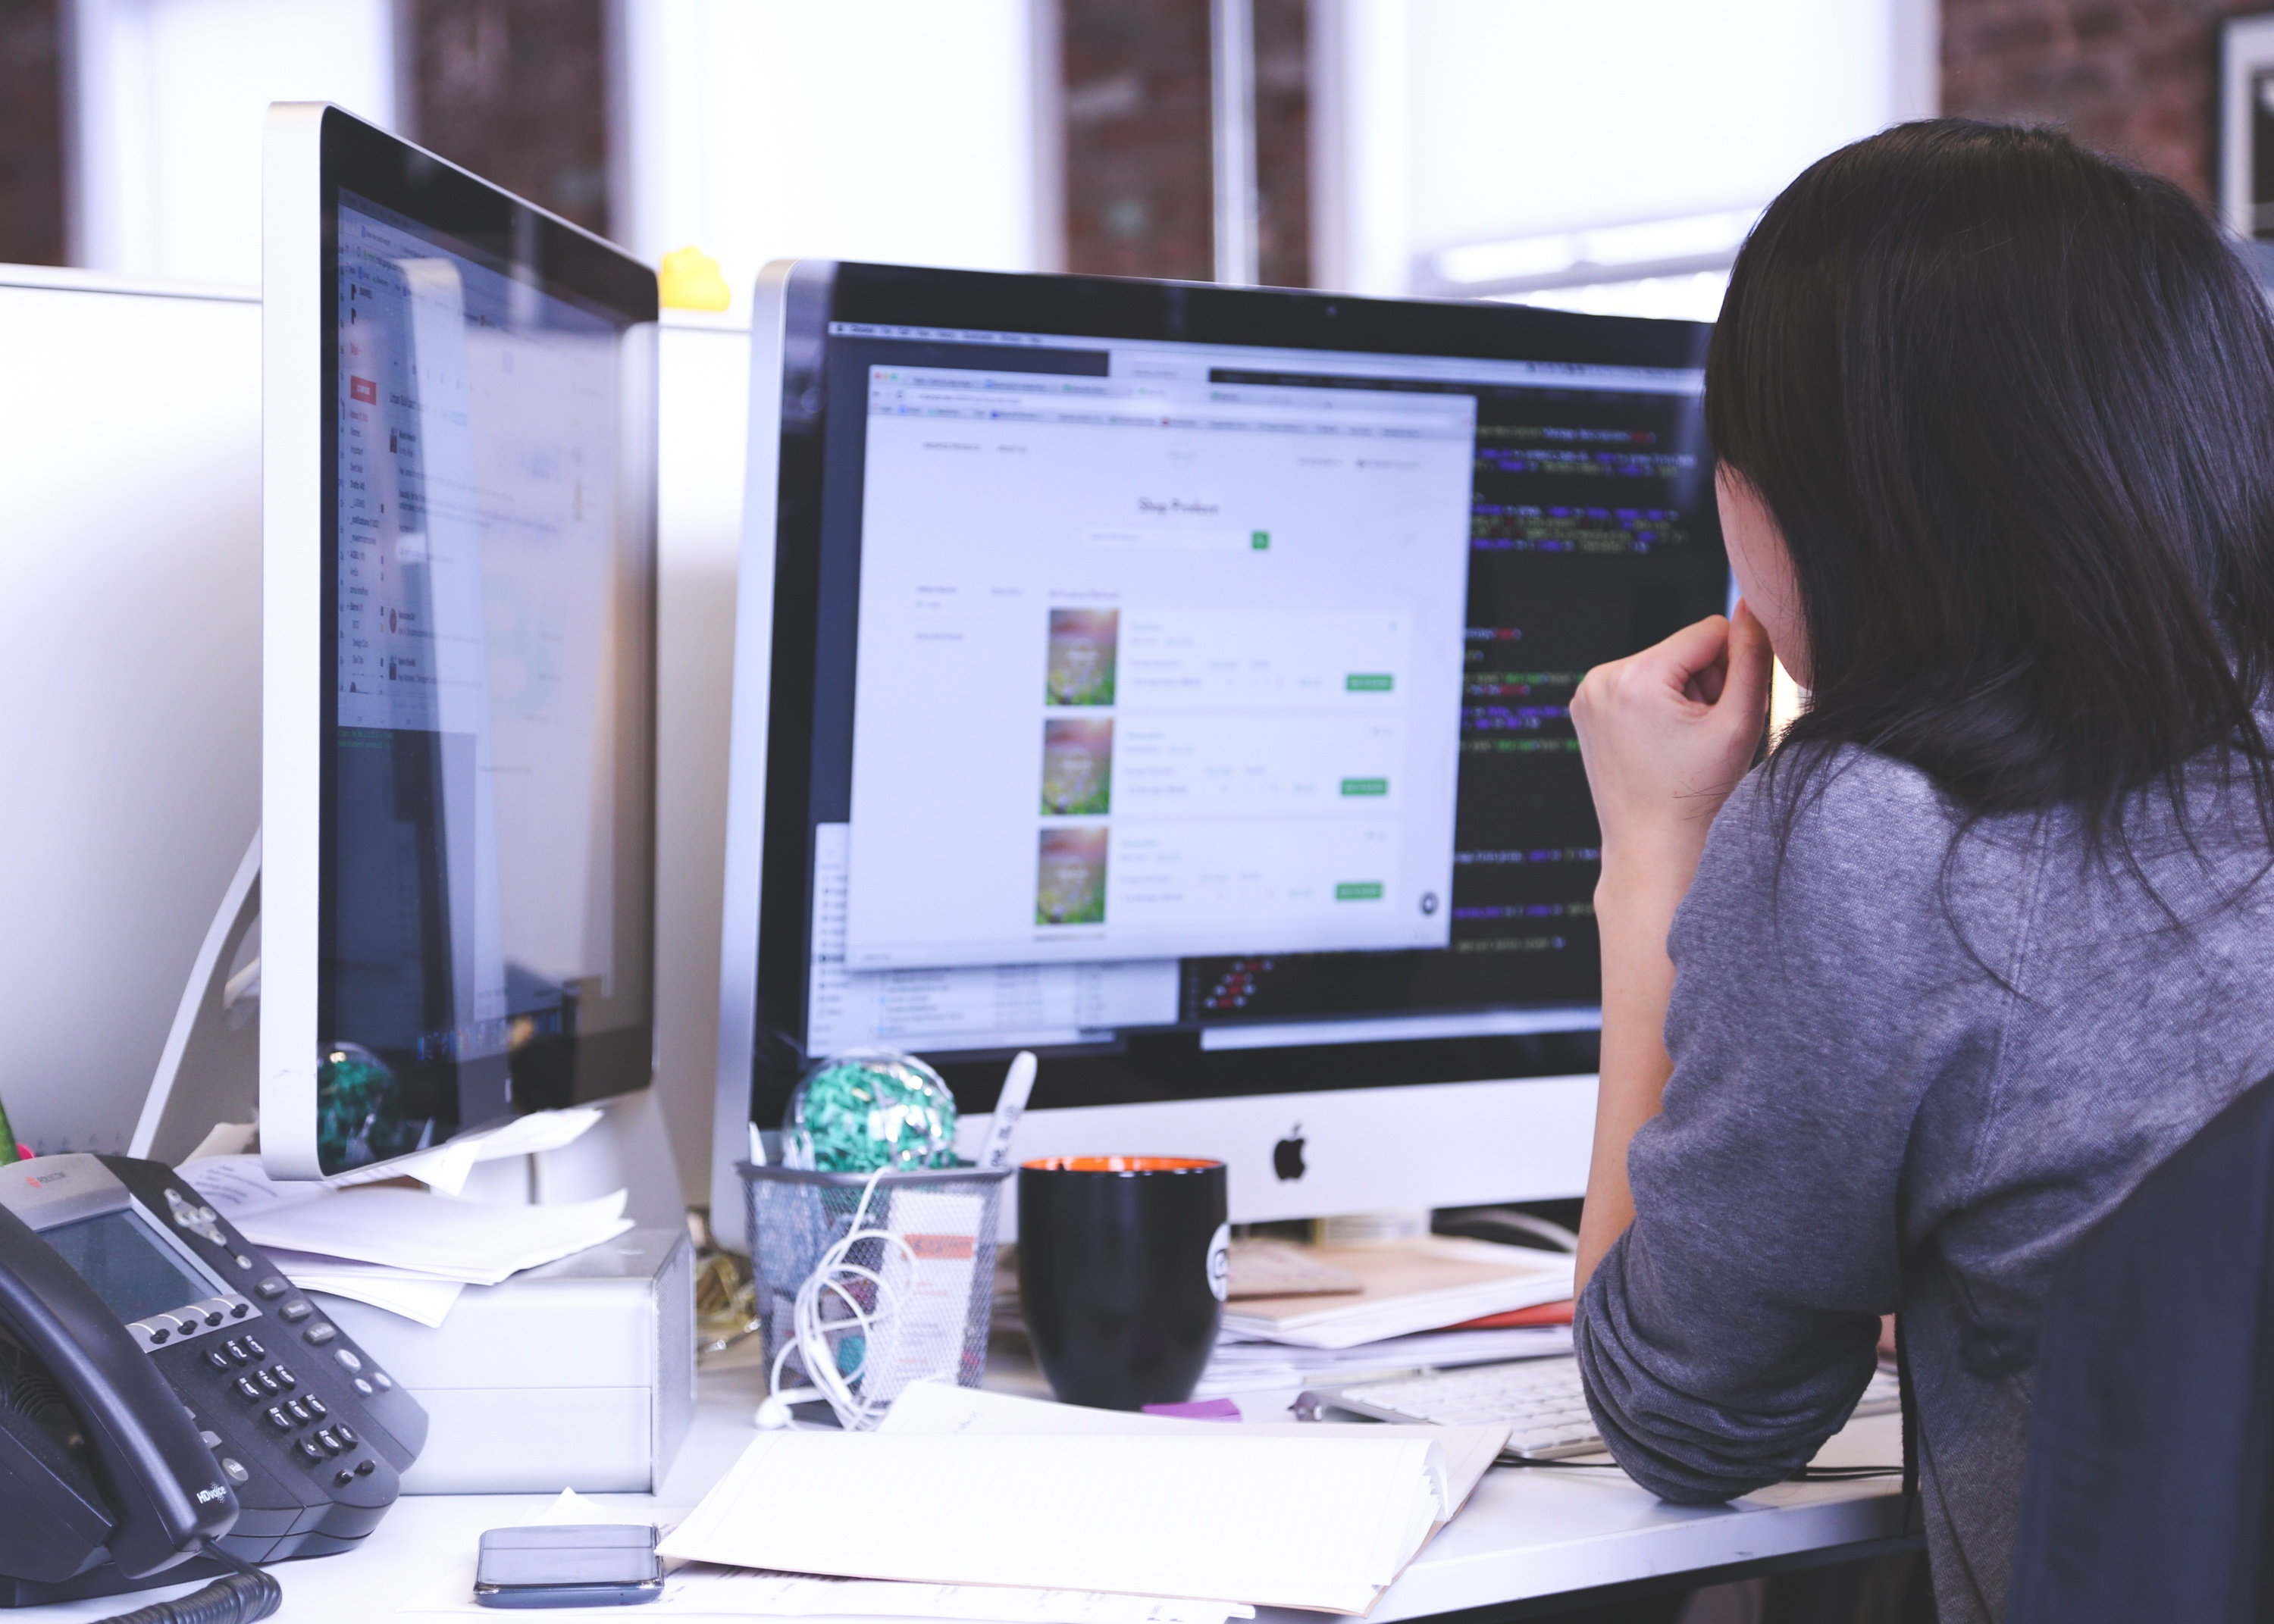 bookkeeper staring at a computer screen to illustrate article about software automation